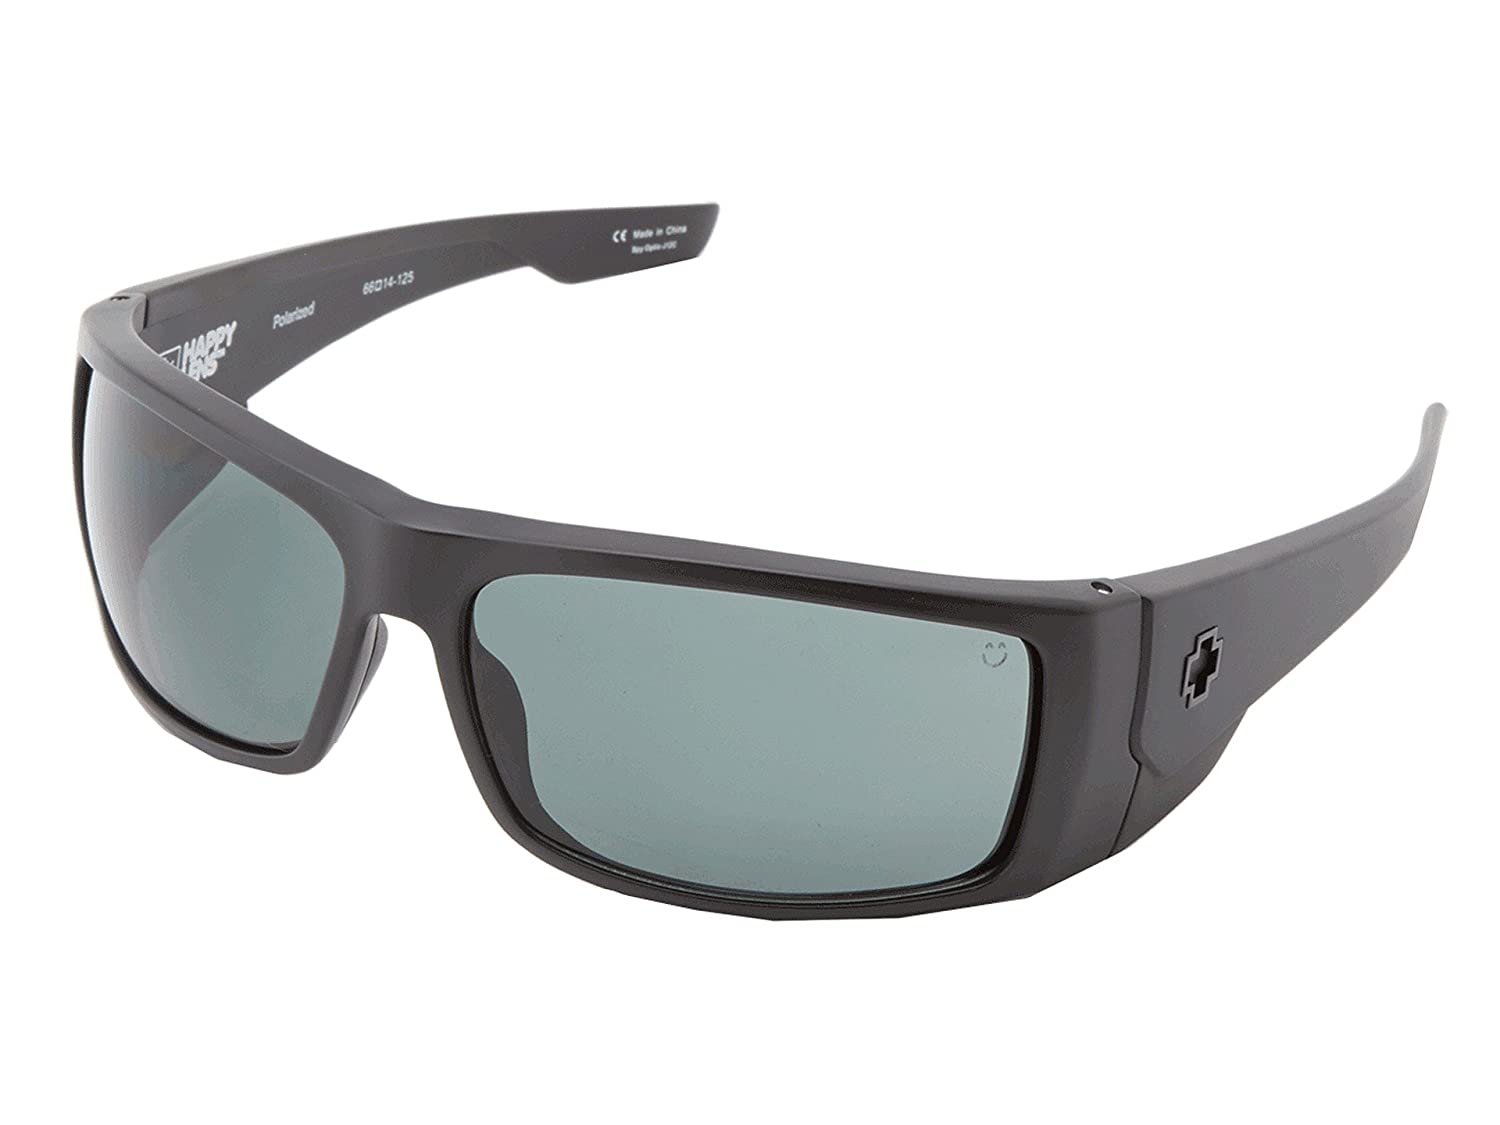 af992945db Amazon.com   Spy Optic Konvoy Sunglasses Matte Black w  Happy Grey Green  Polarized Lens   Sports   Outdoors